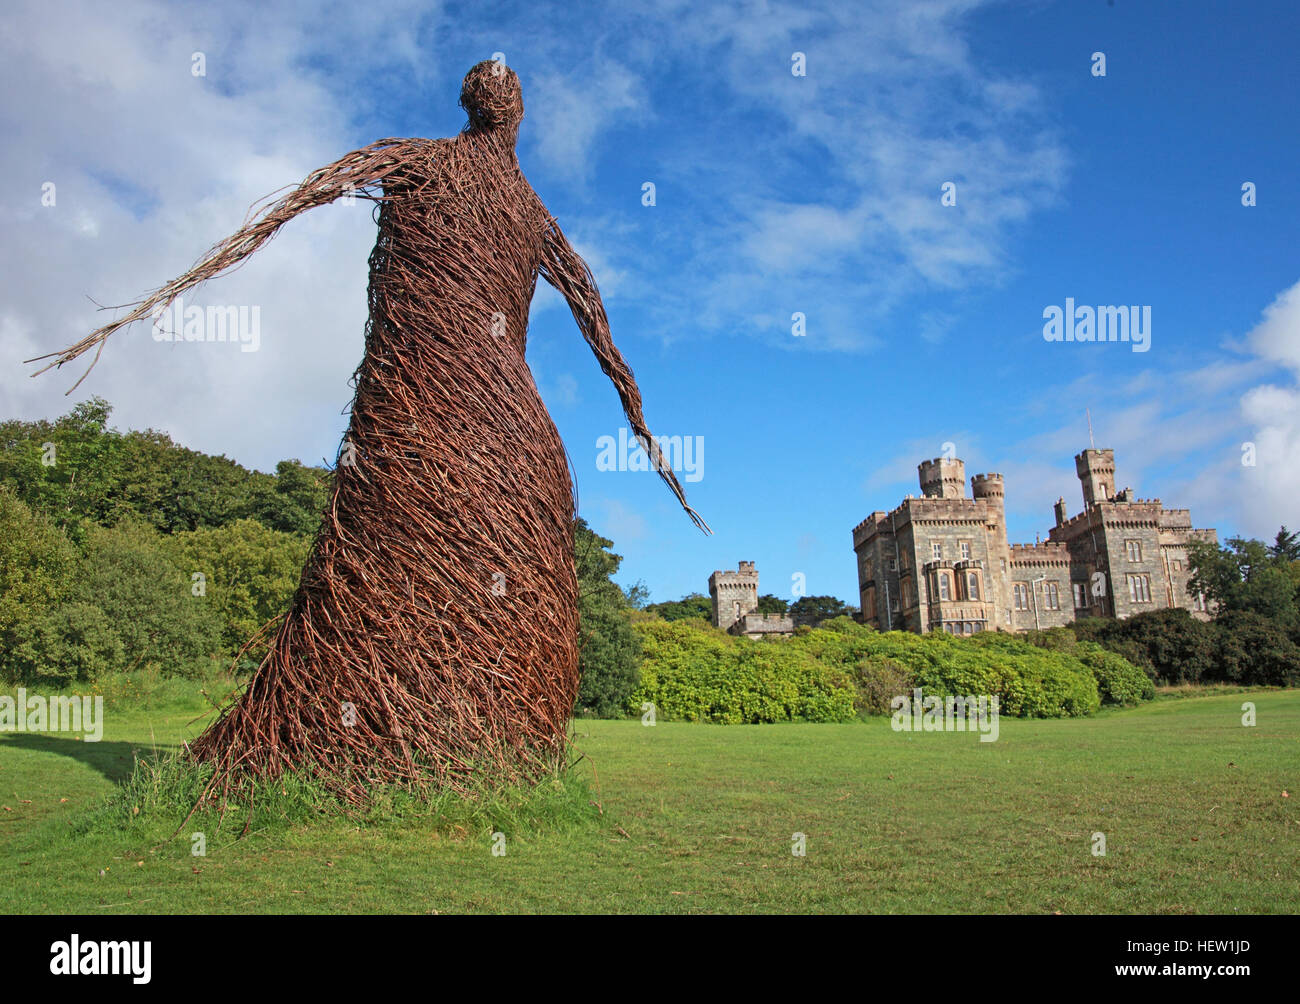 Stornoway Isle Of Lewis - Wicker Woman,Scotland,UK - Stock Image